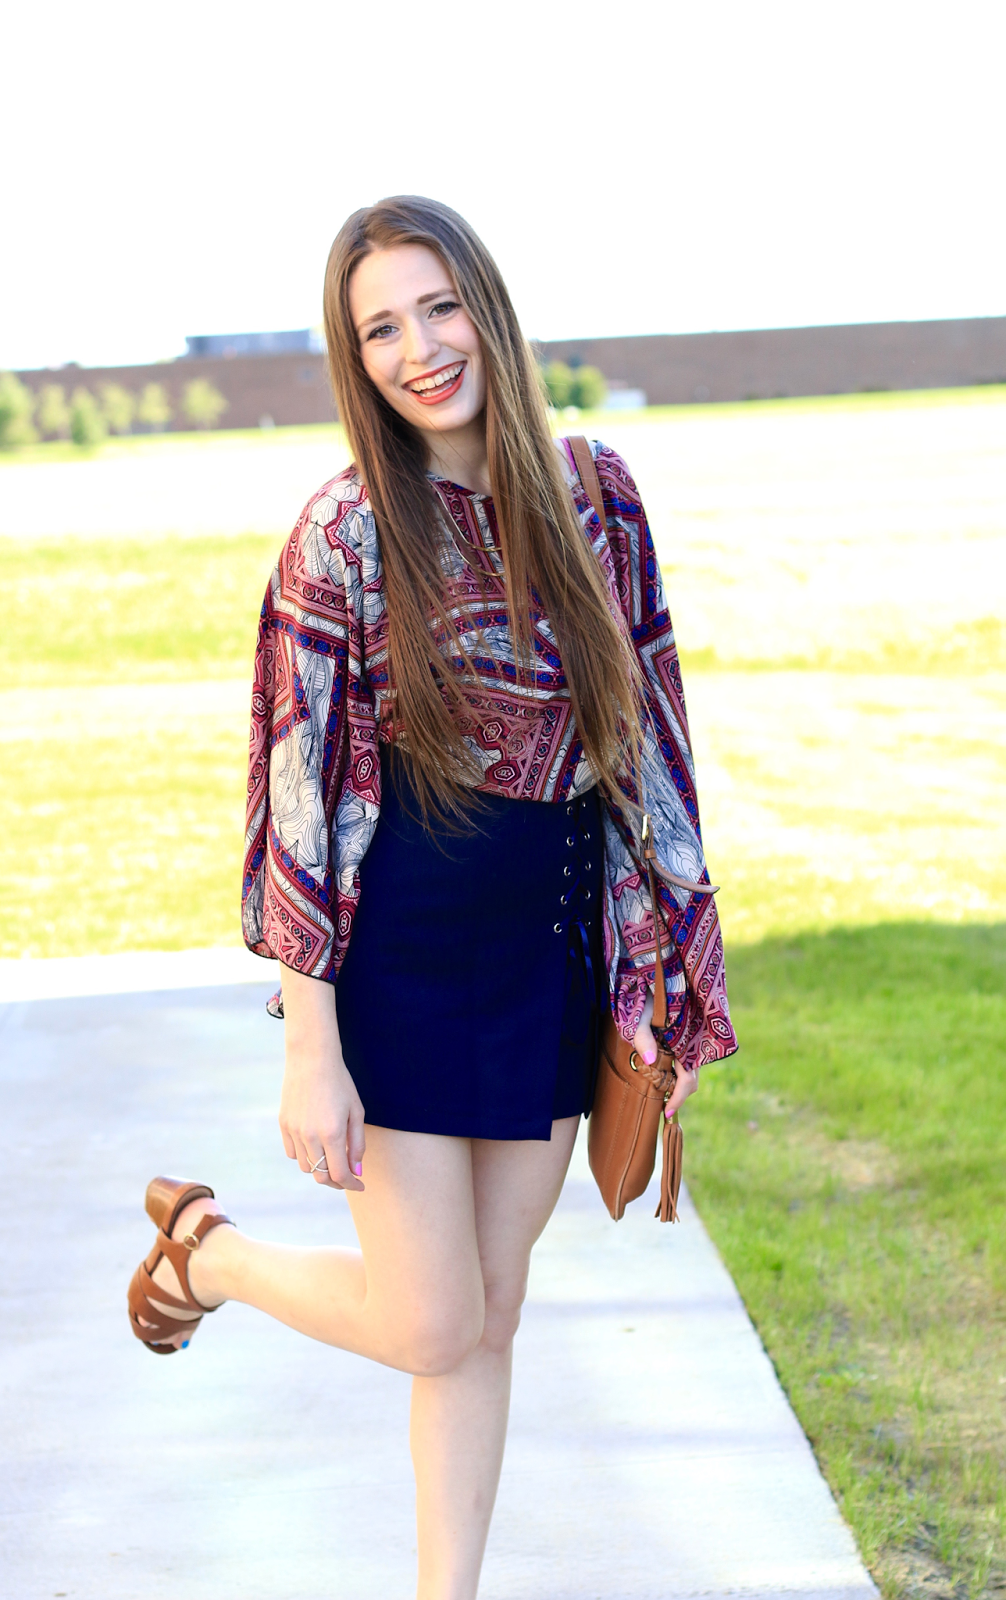 Southern Belle in Training   Fashion, Outfits, Favorite outfit